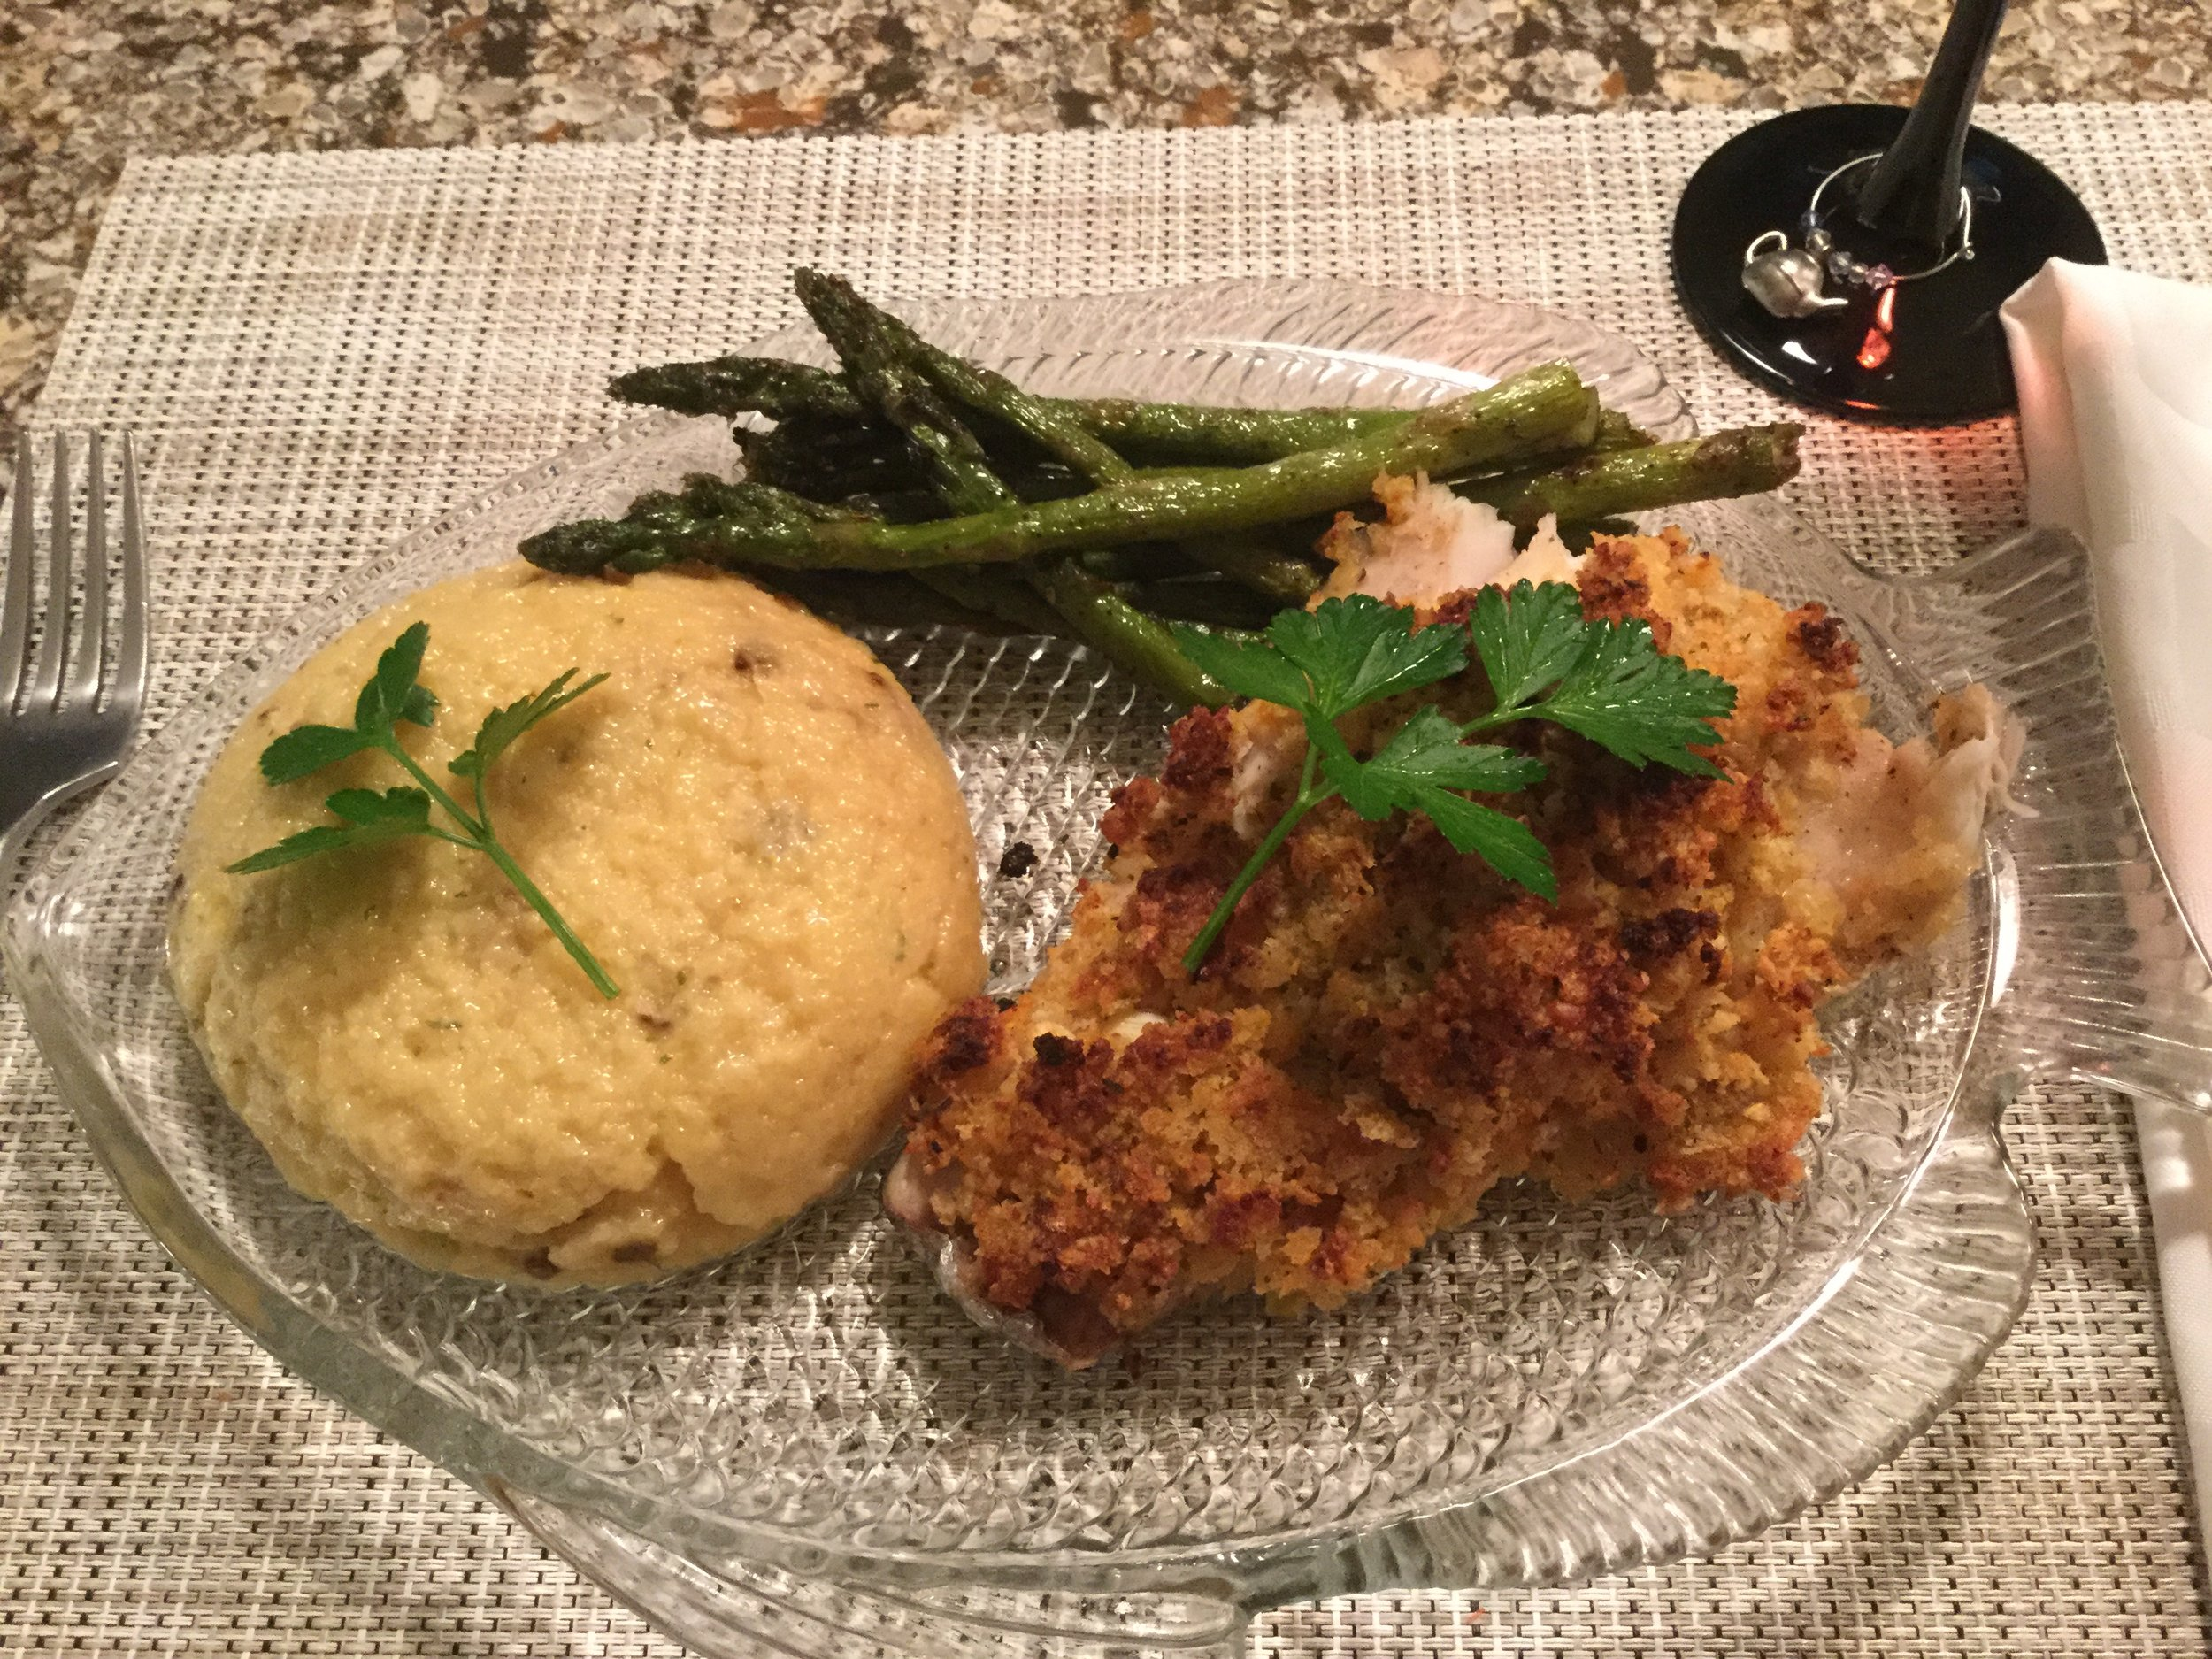 Parmesan Encrusted Striped Bass